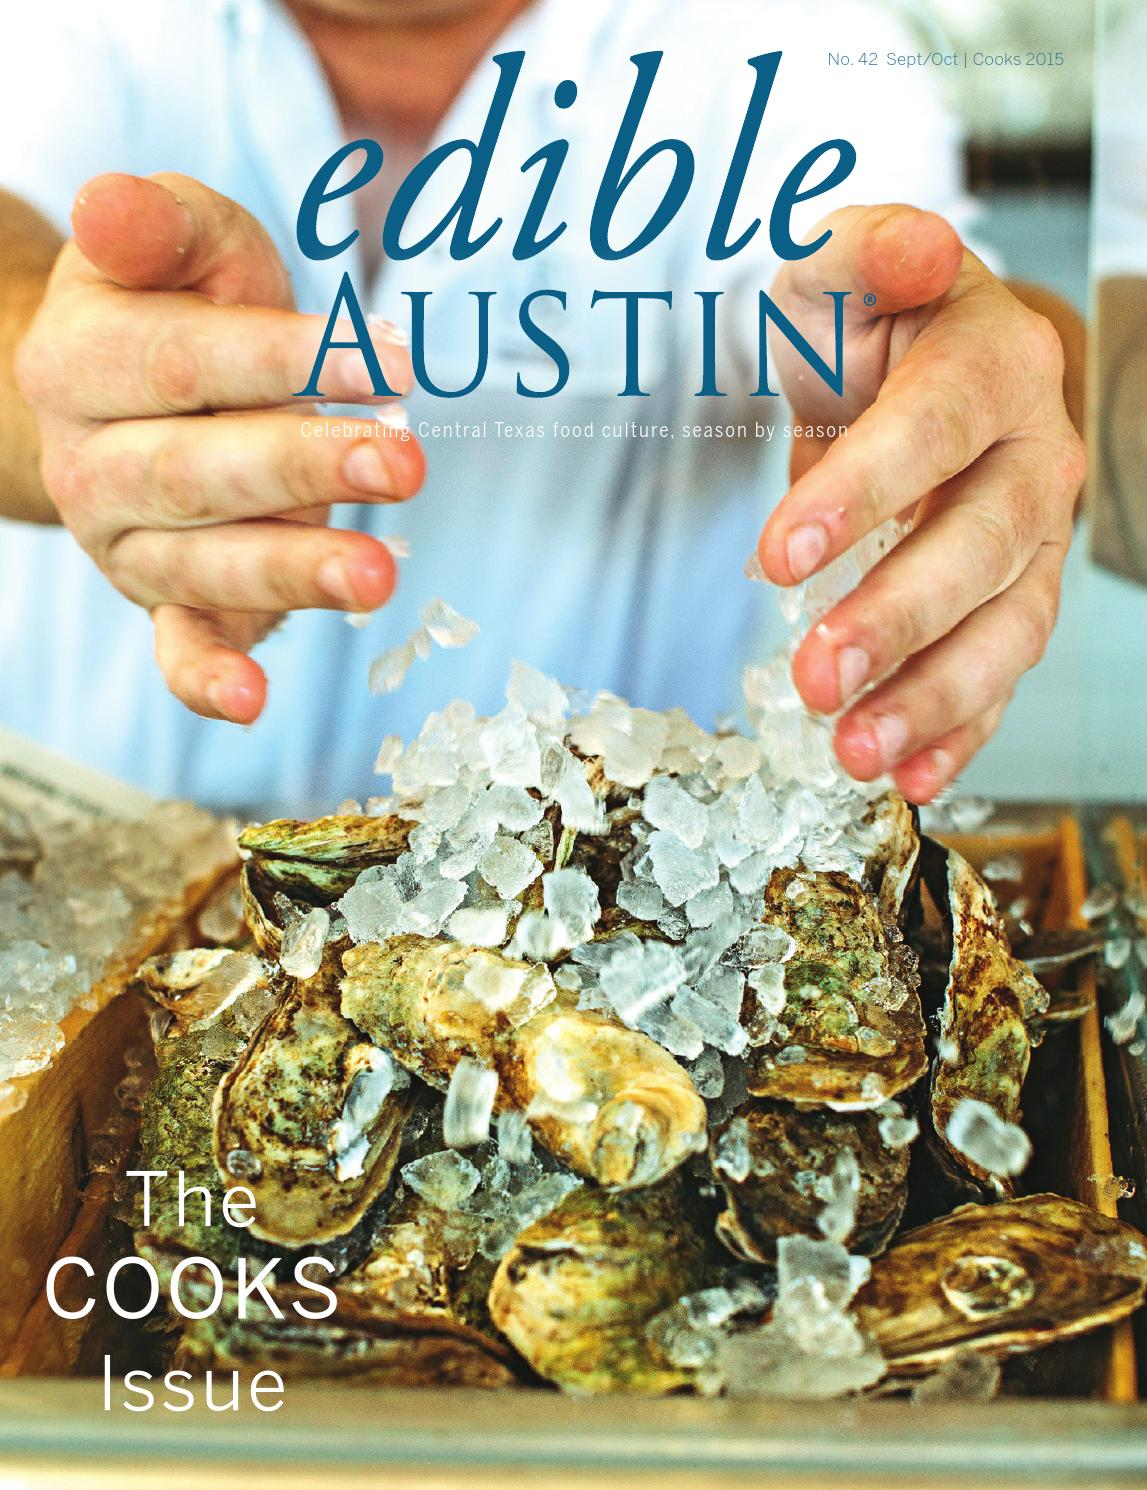 Cooks 2015 by Edible Austin - issuu